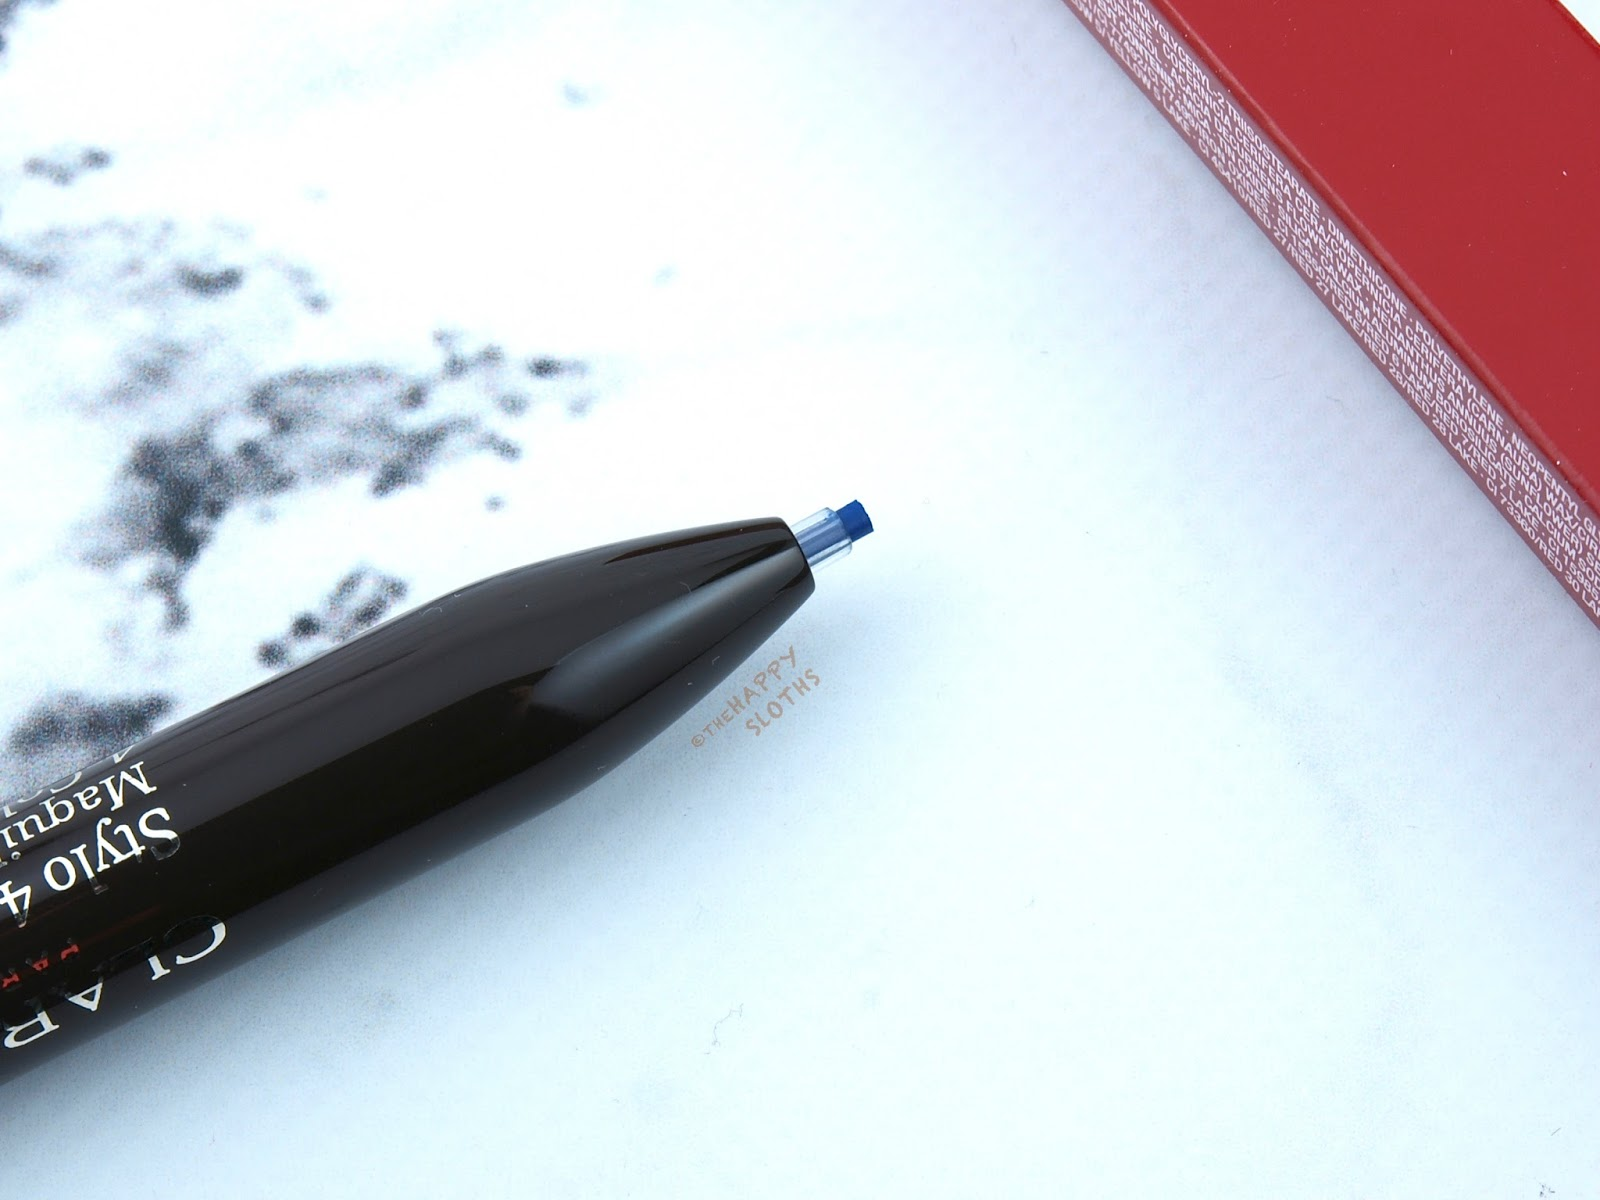 Clarins Stylo 4 Couleurs All-in-One Pen: Review and Swatches